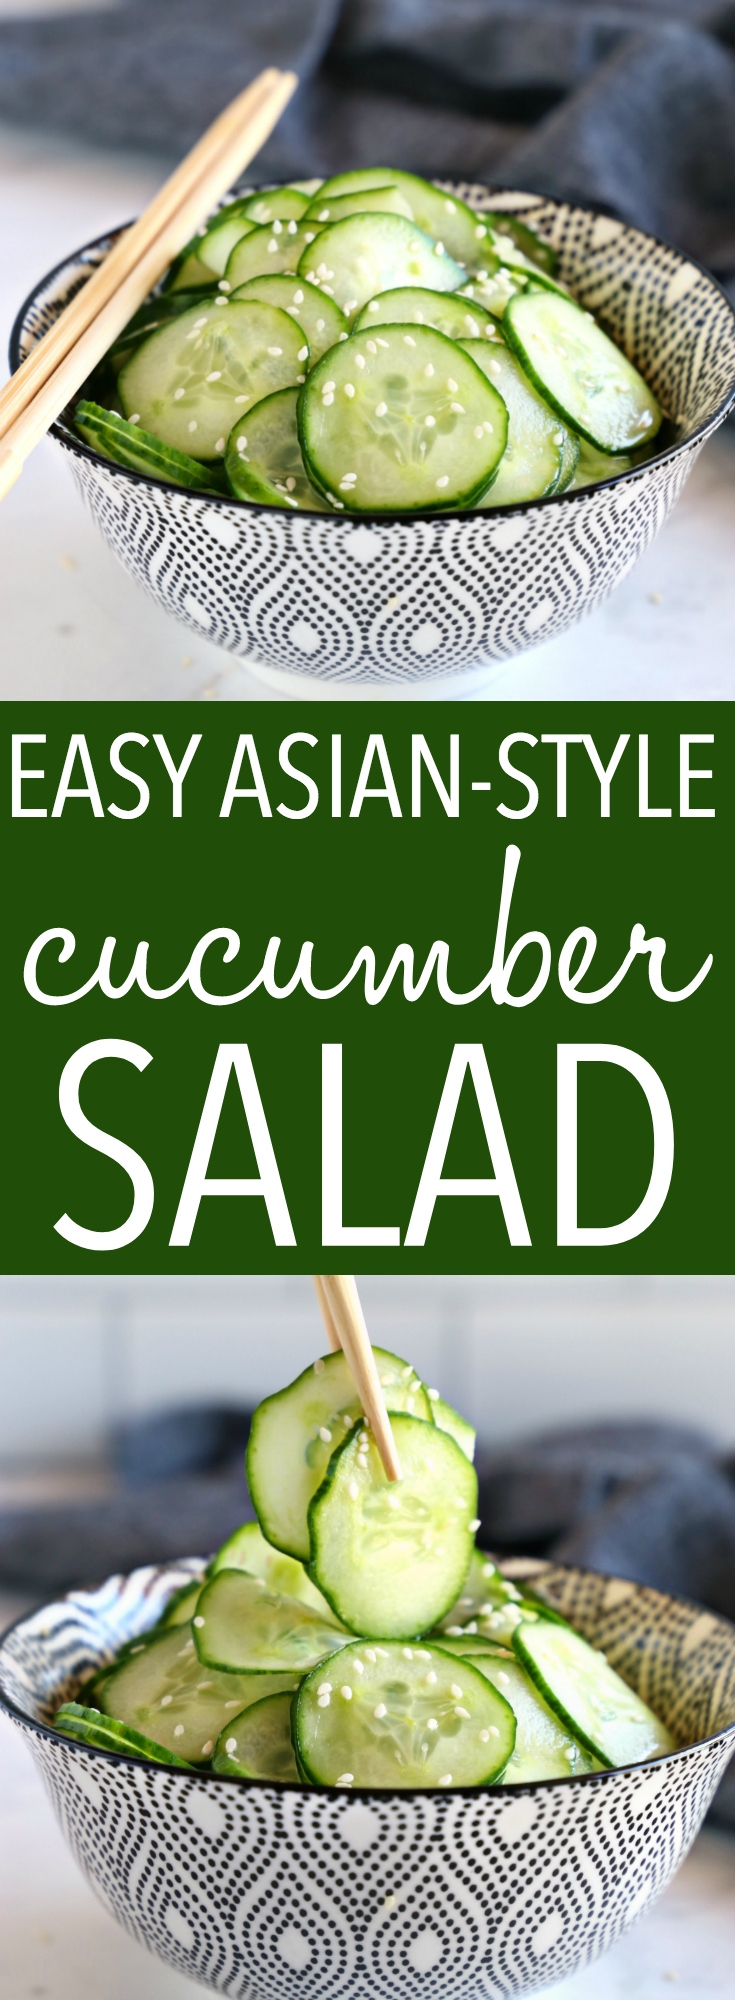 This Easy Asian Cucumber Salad is the easiest lunch idea that's so refreshing! Make it in minutes and store it in a mason jar for a quick and easy meal prep solution! Recipe from thebusybaker.ca! #easysalad #easycucumbersalad #healthycucumbersalad via @busybakerblog